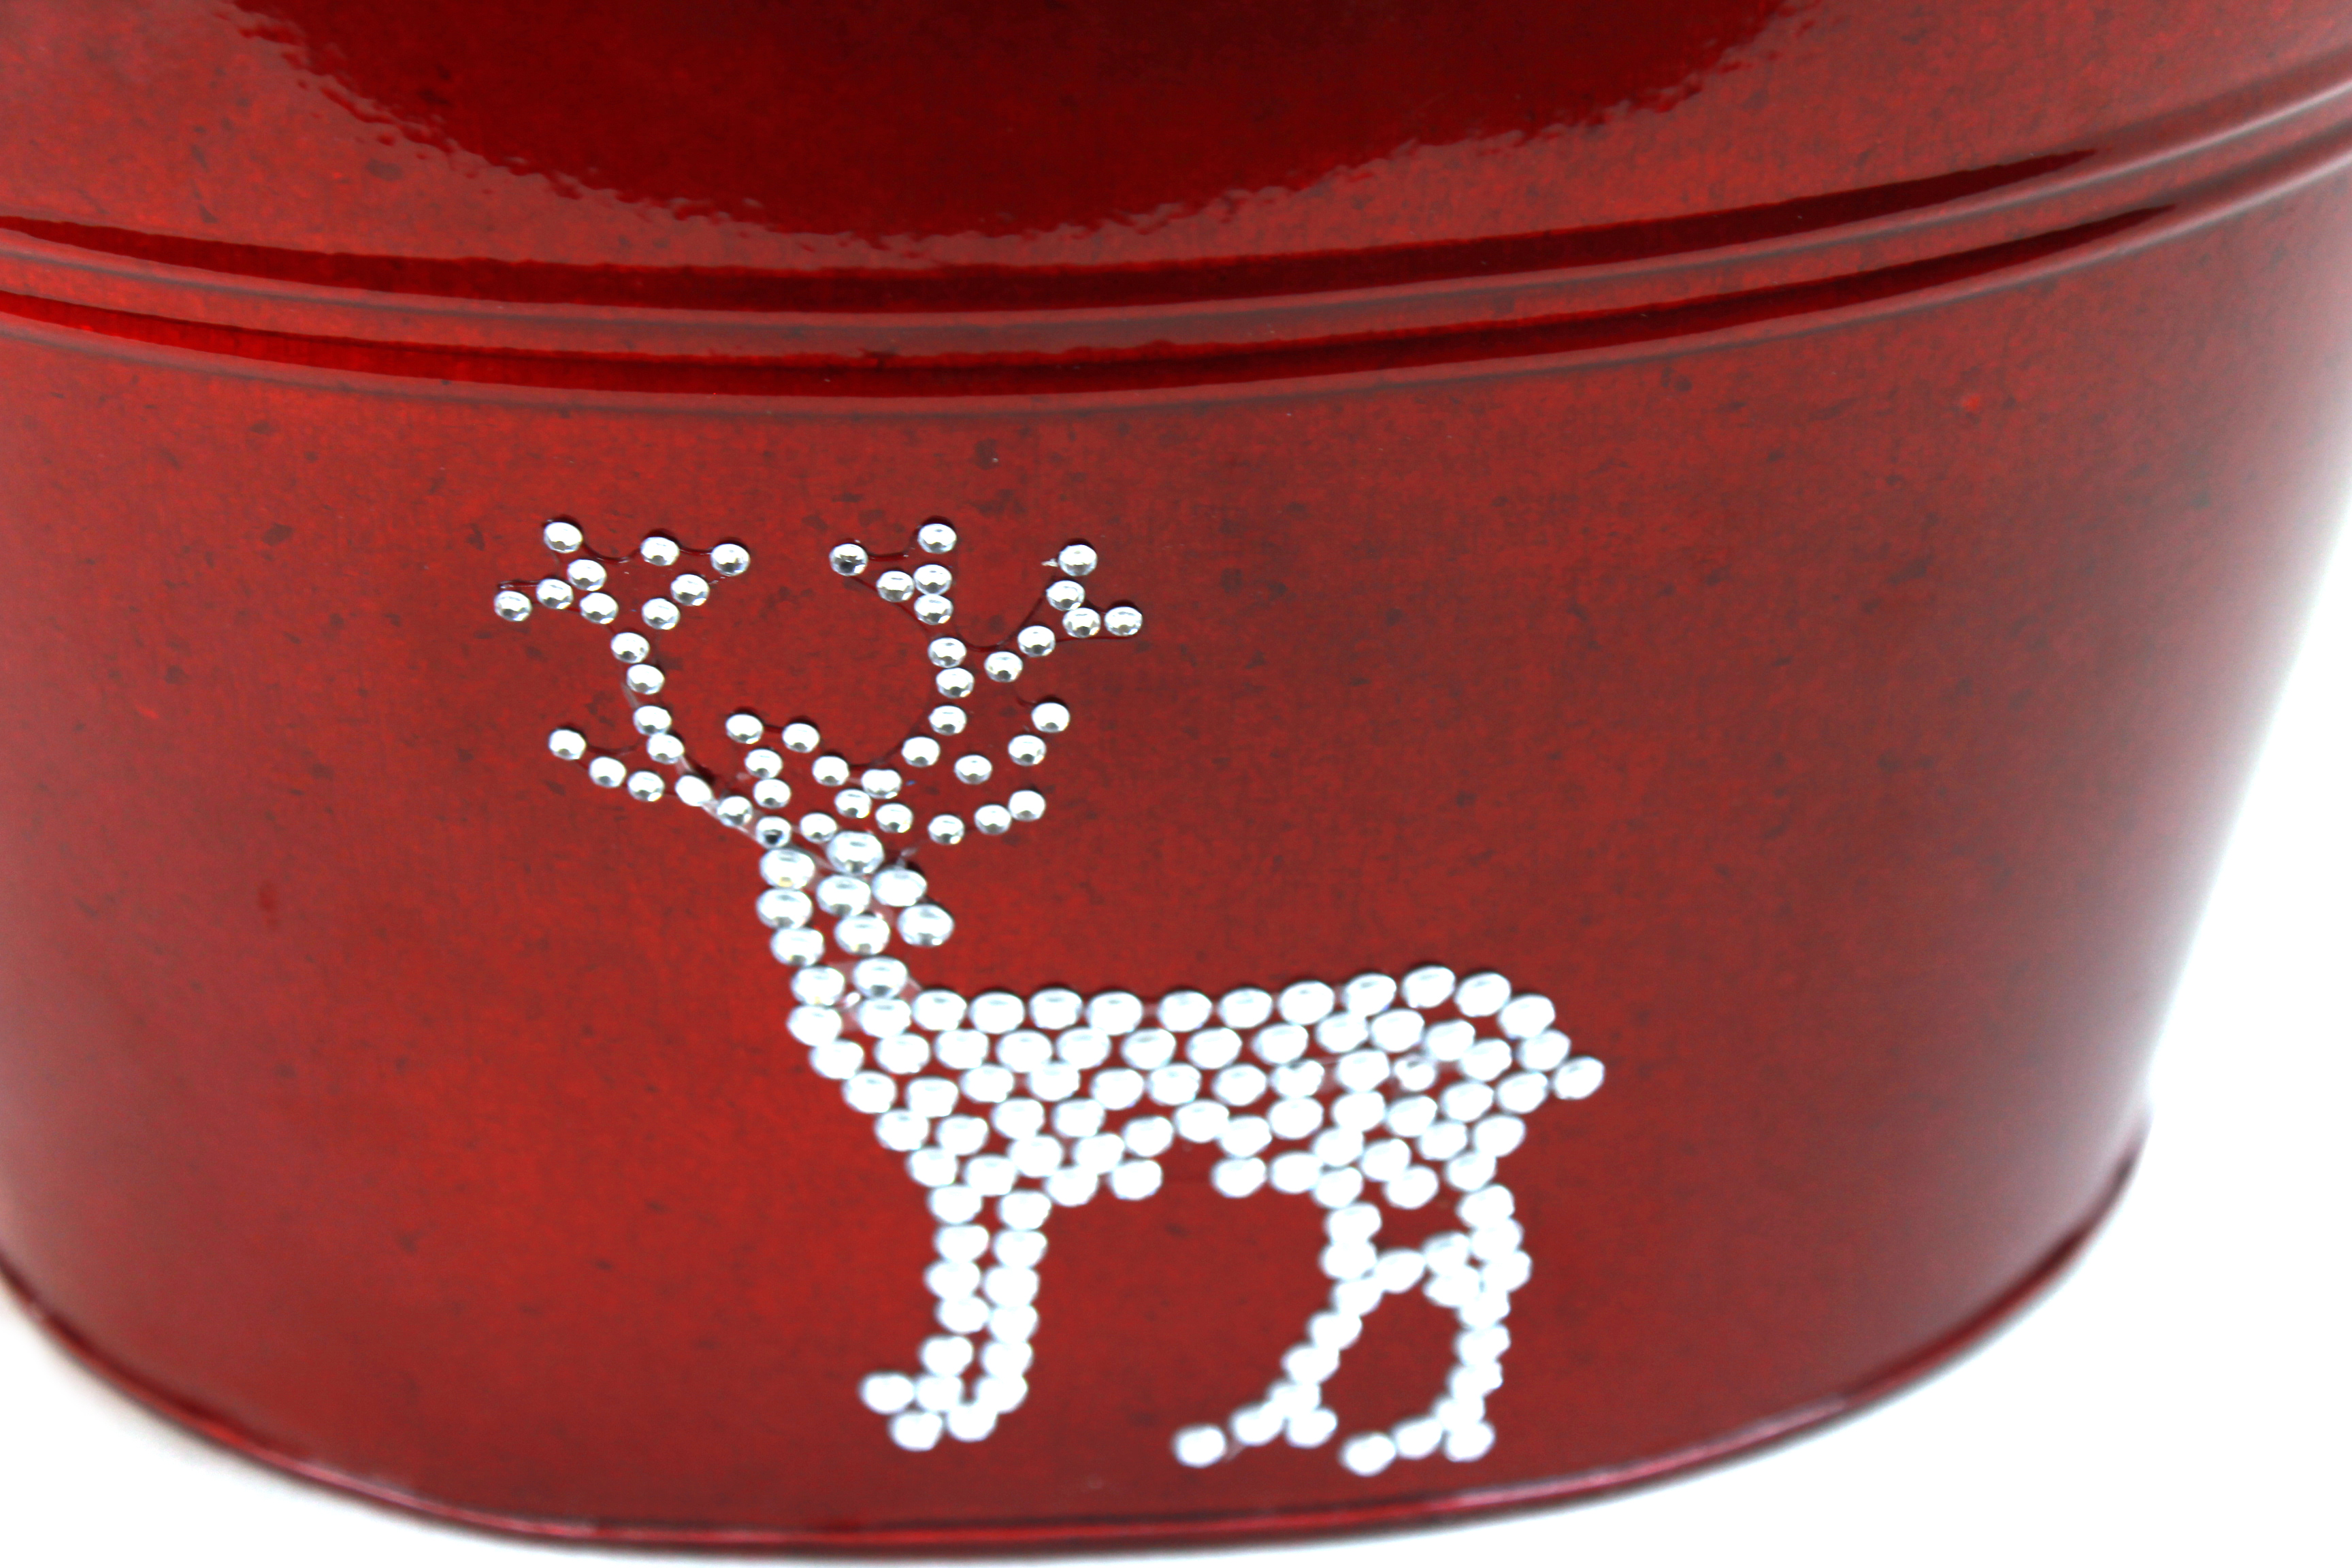 "Red Oval Metal Basket with Reindeer 10.5"" x 8.75"" x 6.5"" close"